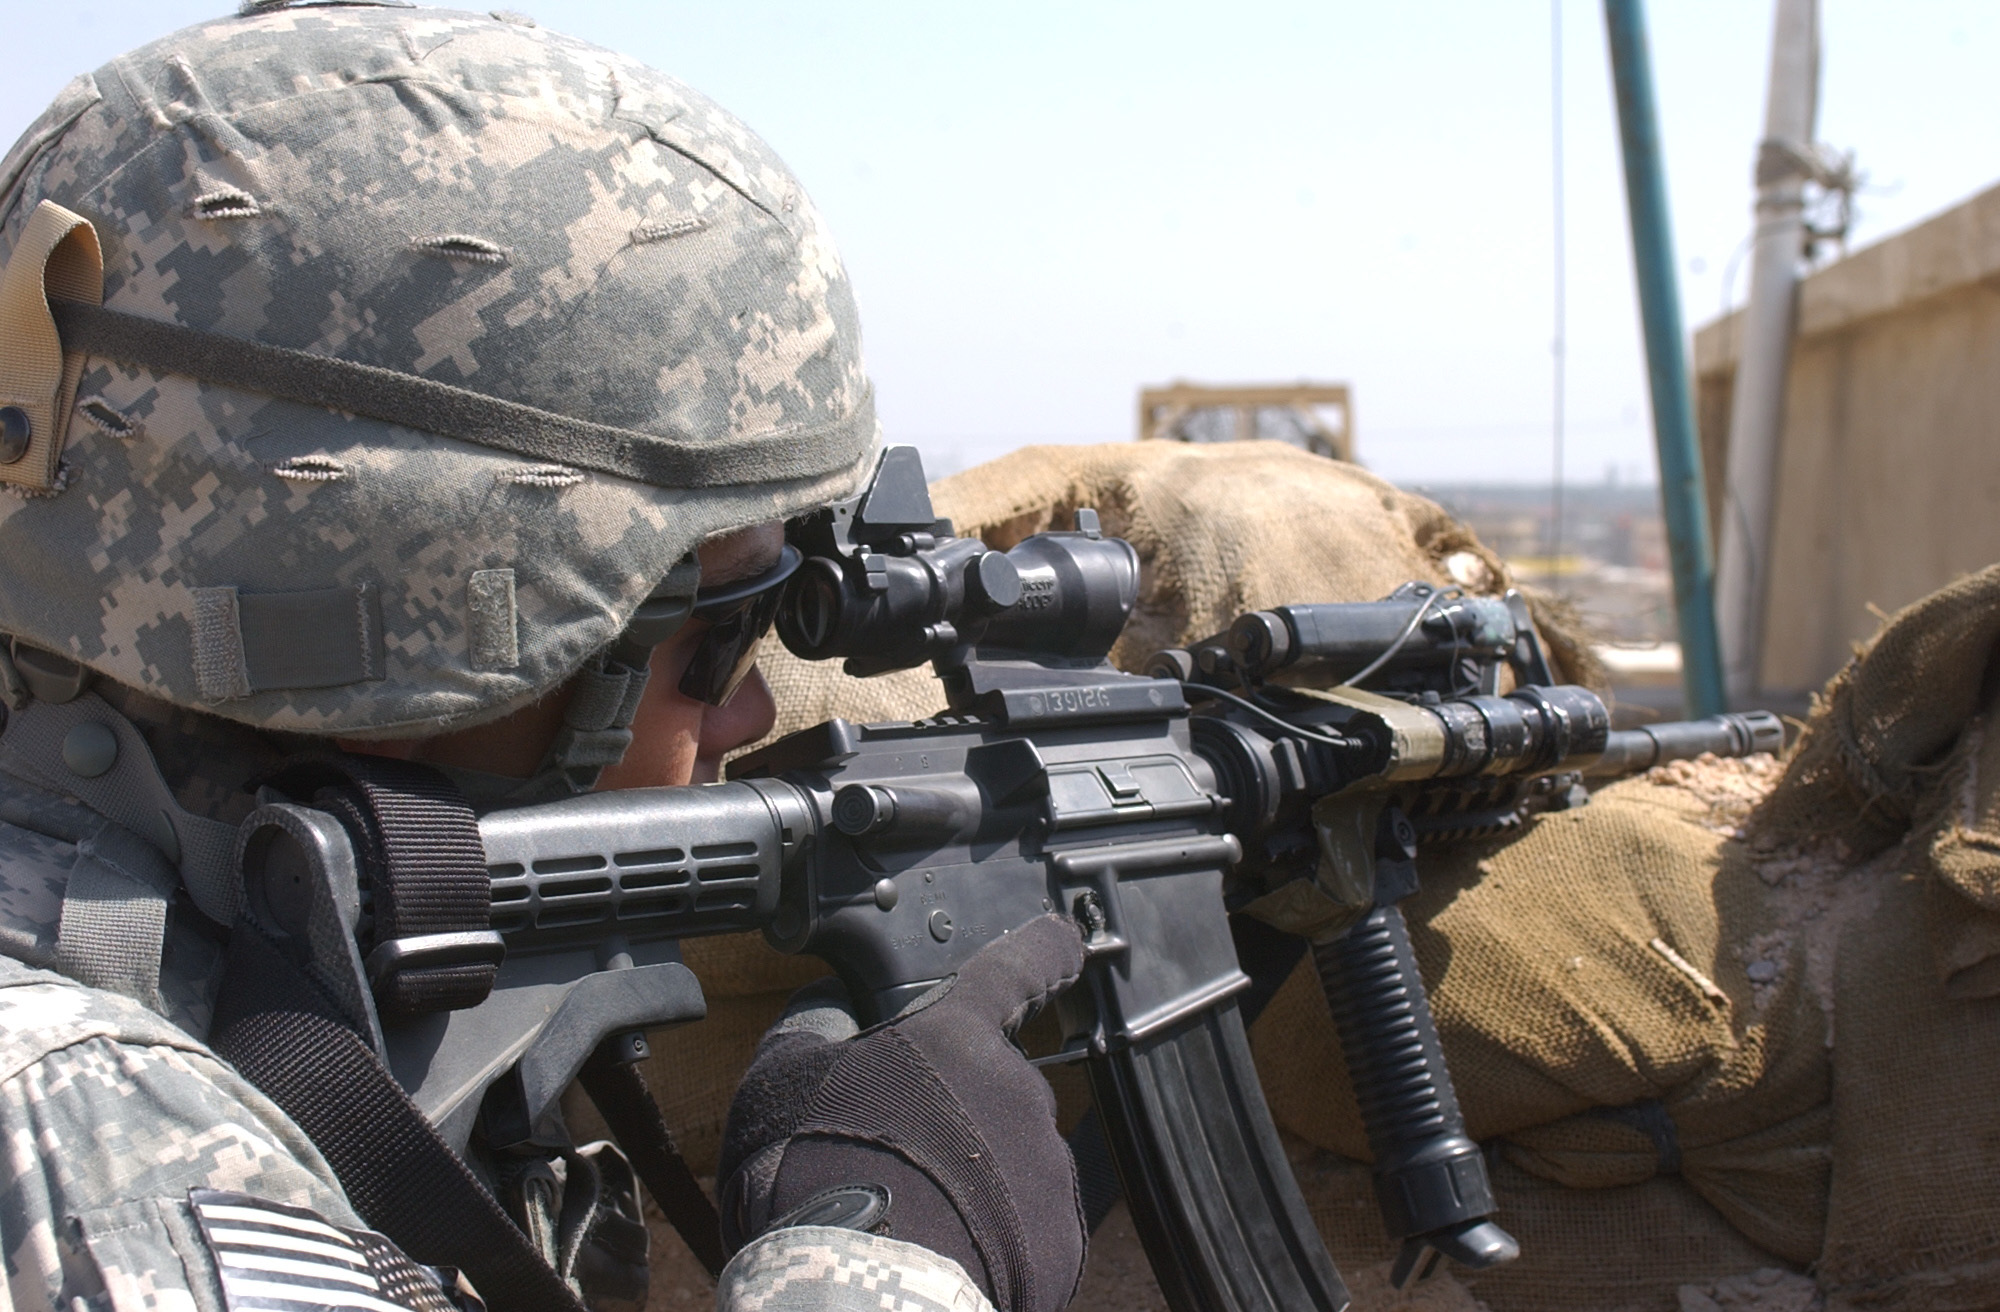 A U.S. Army soldier in March 2007, wears a helmet with a UCP camouflage cover during the Iraq War.